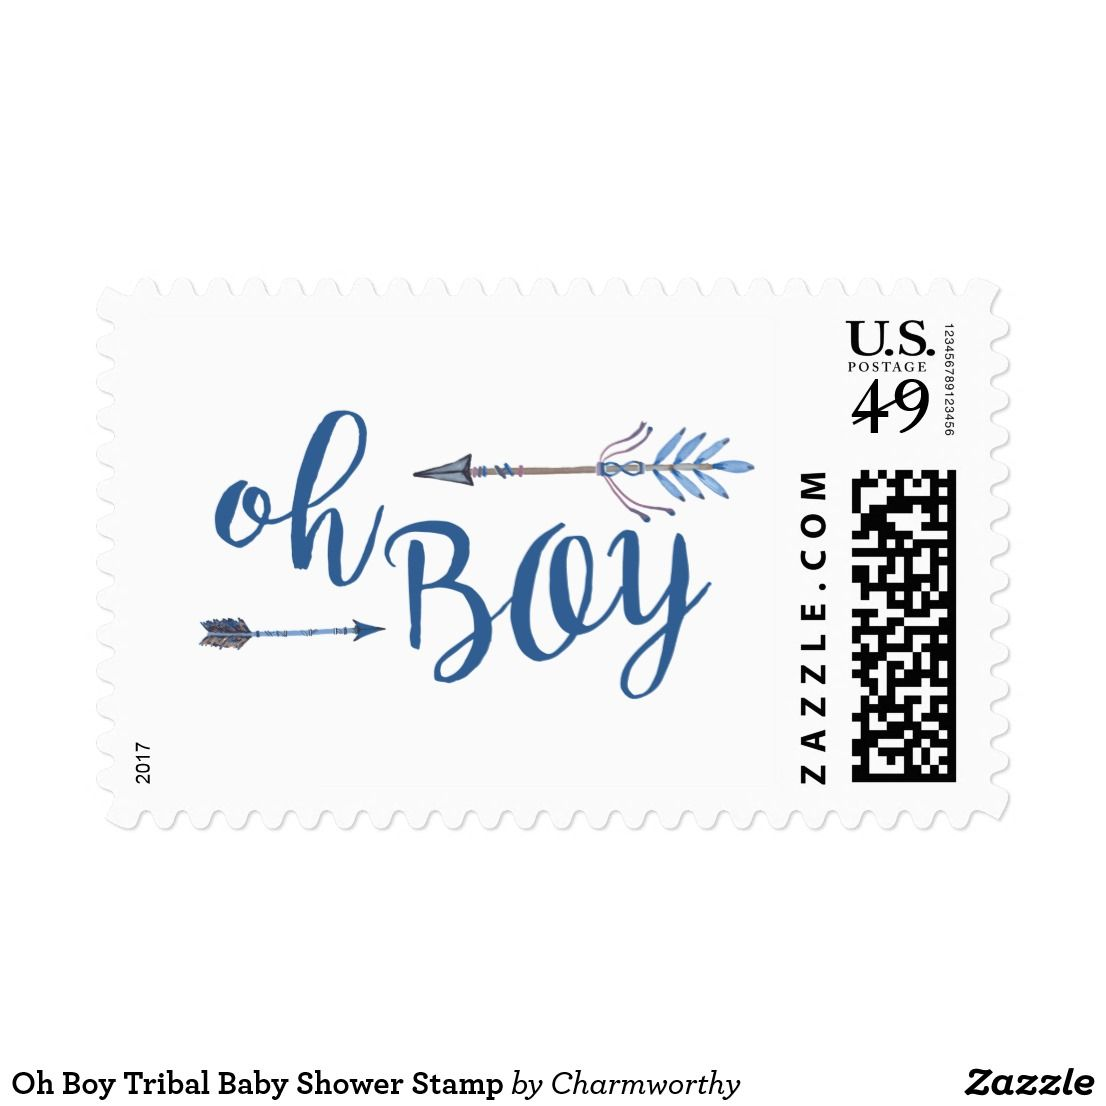 Oh Boy Tribal Baby Shower Stamp Coordinating Stamps To Match Your Party  Theme.